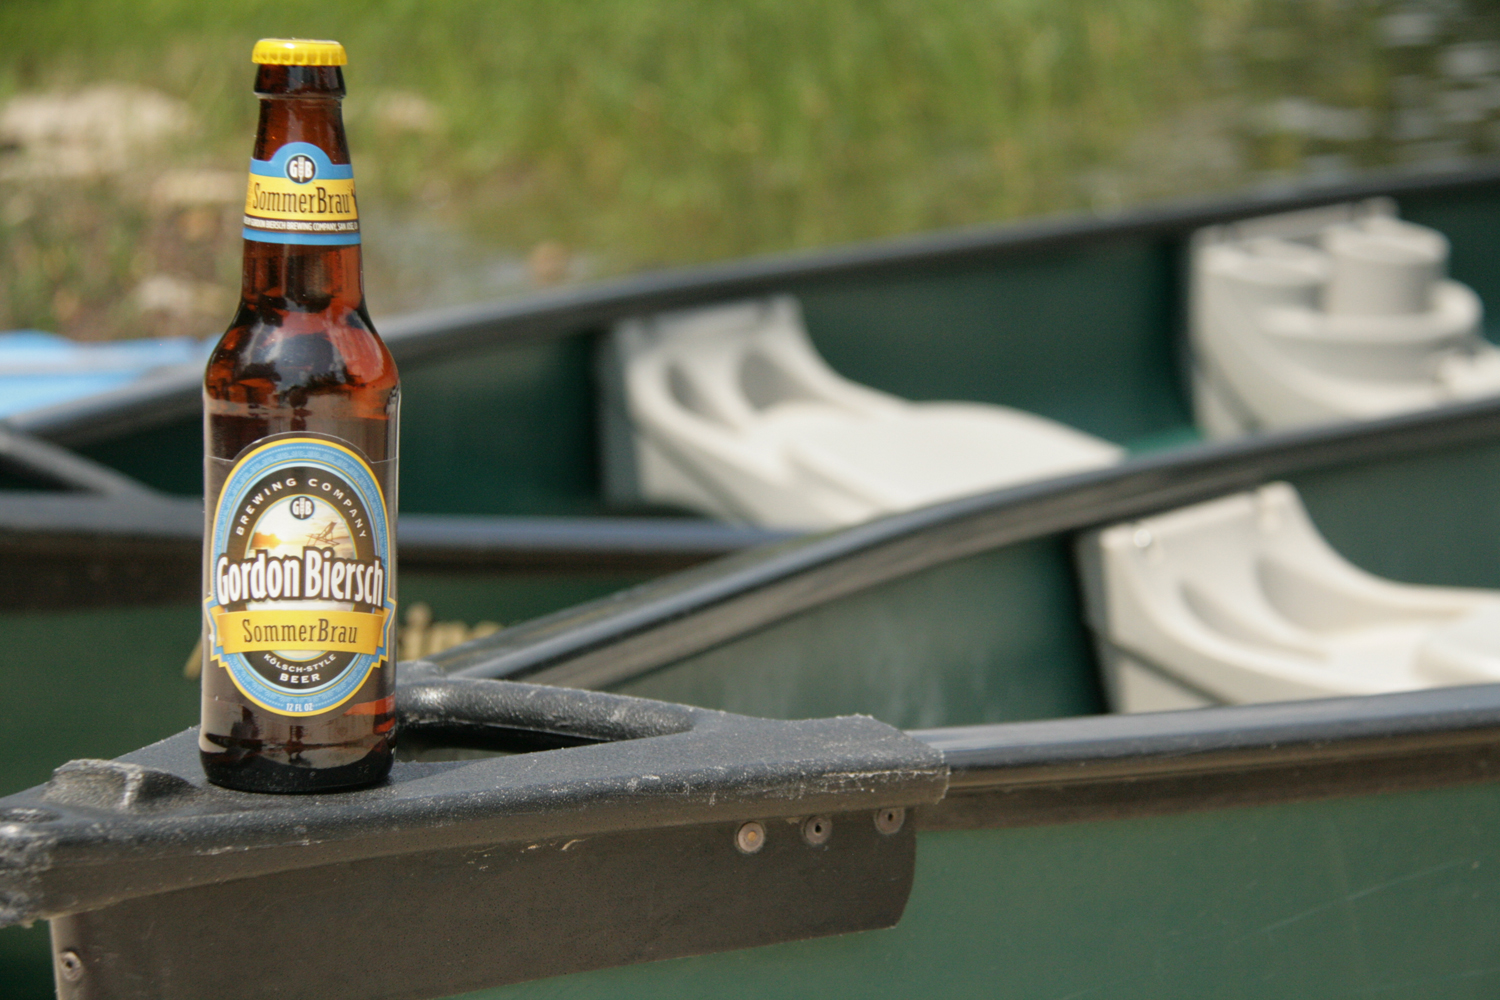 Enjoy SommerBrau, a Gordon Biersch summer beer.